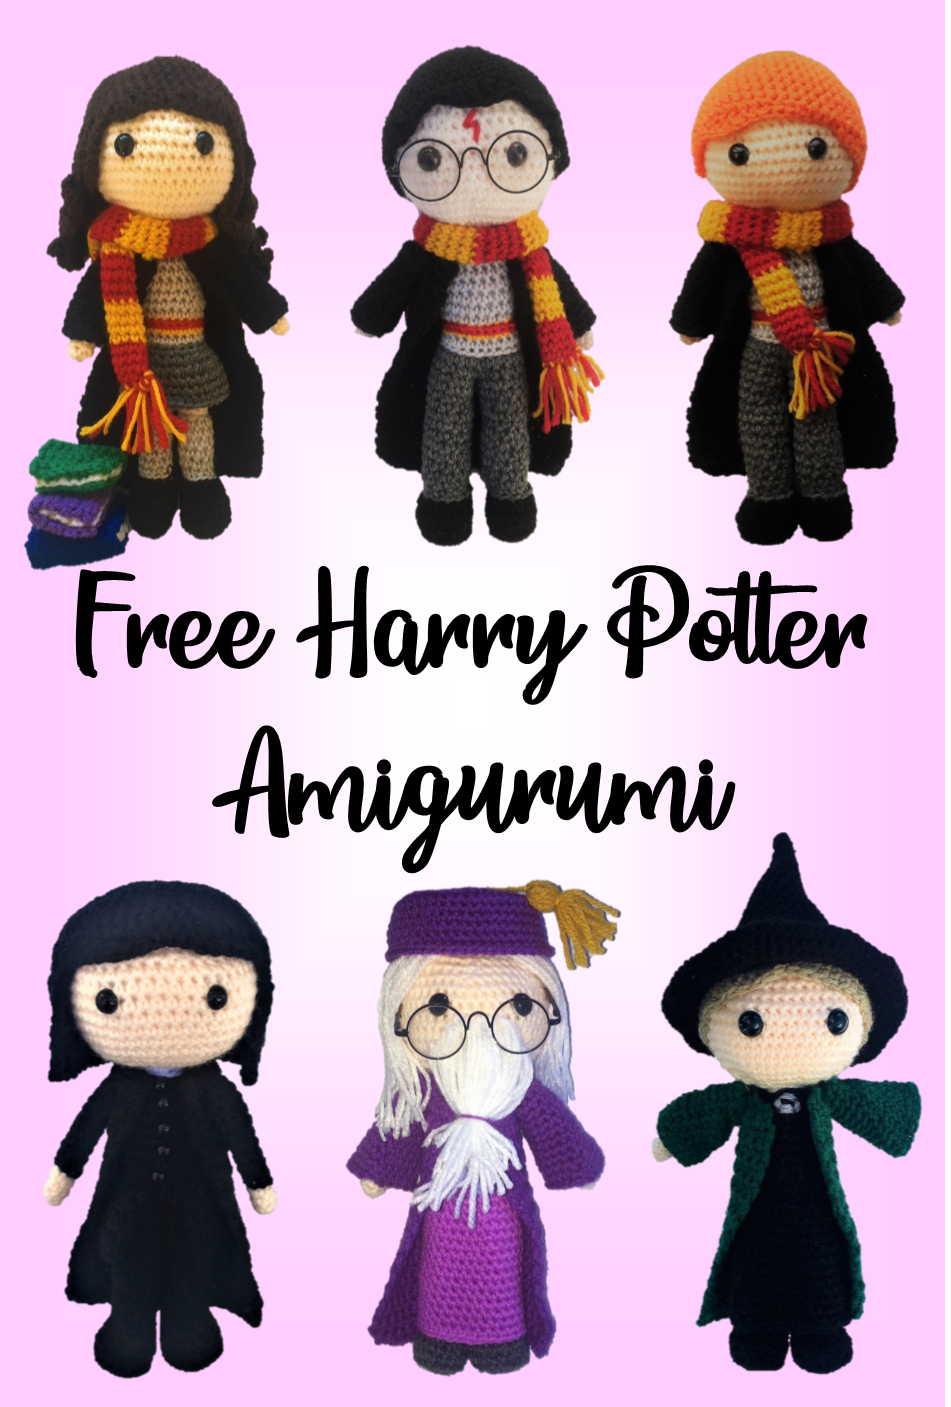 Free Amigurumi Harry Potter patterns including Hermione, Harry, Ron, Snape, Dumbledore and McGonagall #crochettoysanddolls